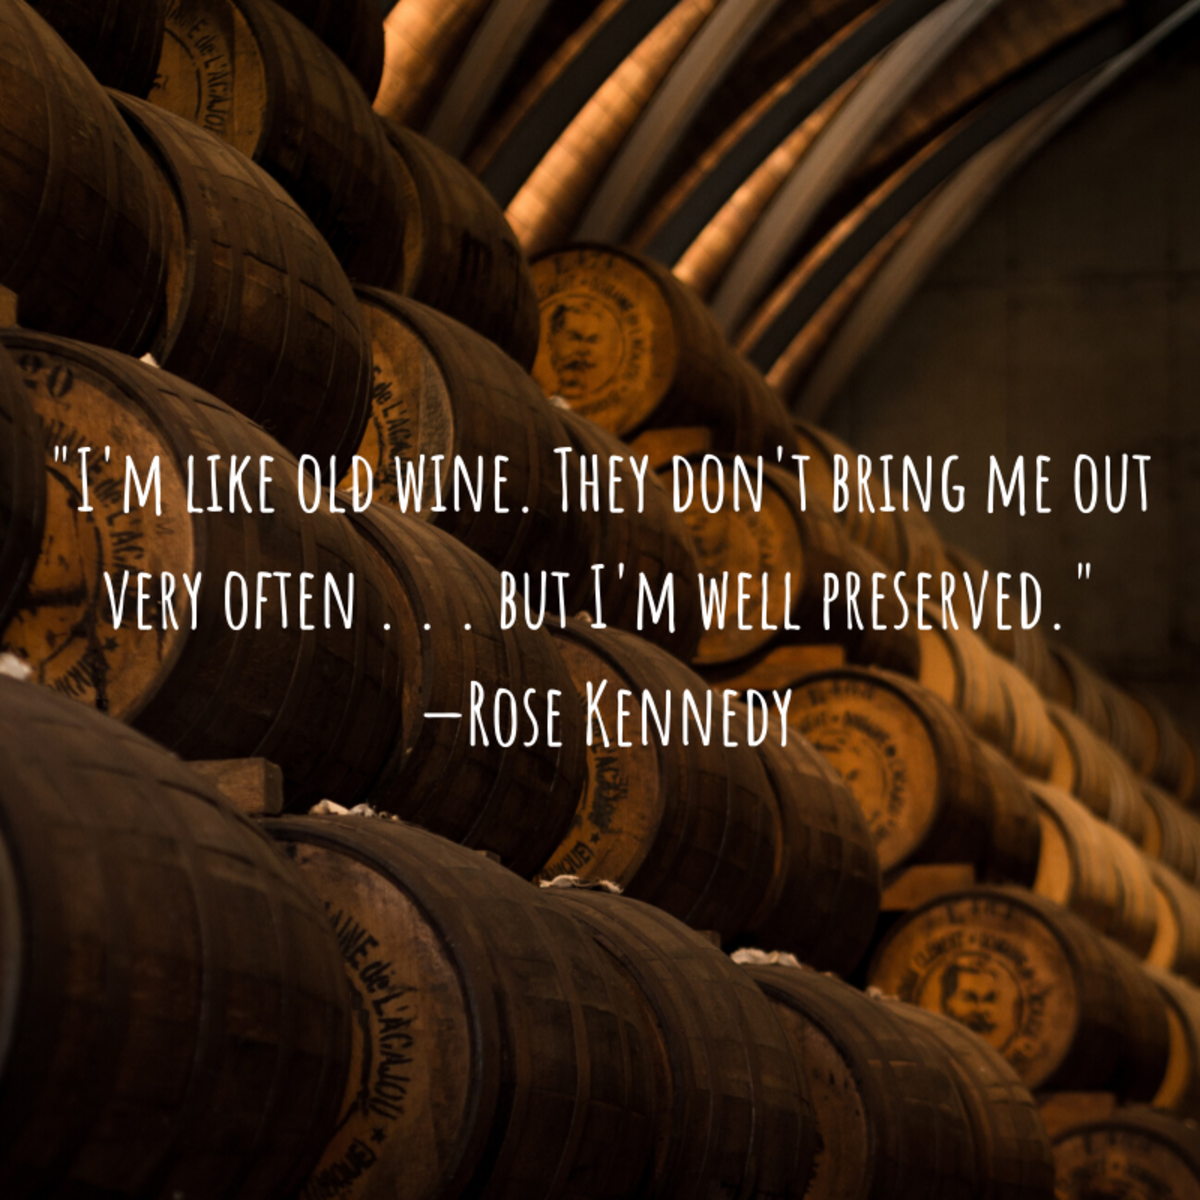 """I'm like old wine. They don't bring me out very often . . . but I'm well preserved."" —Rose Kennedy"